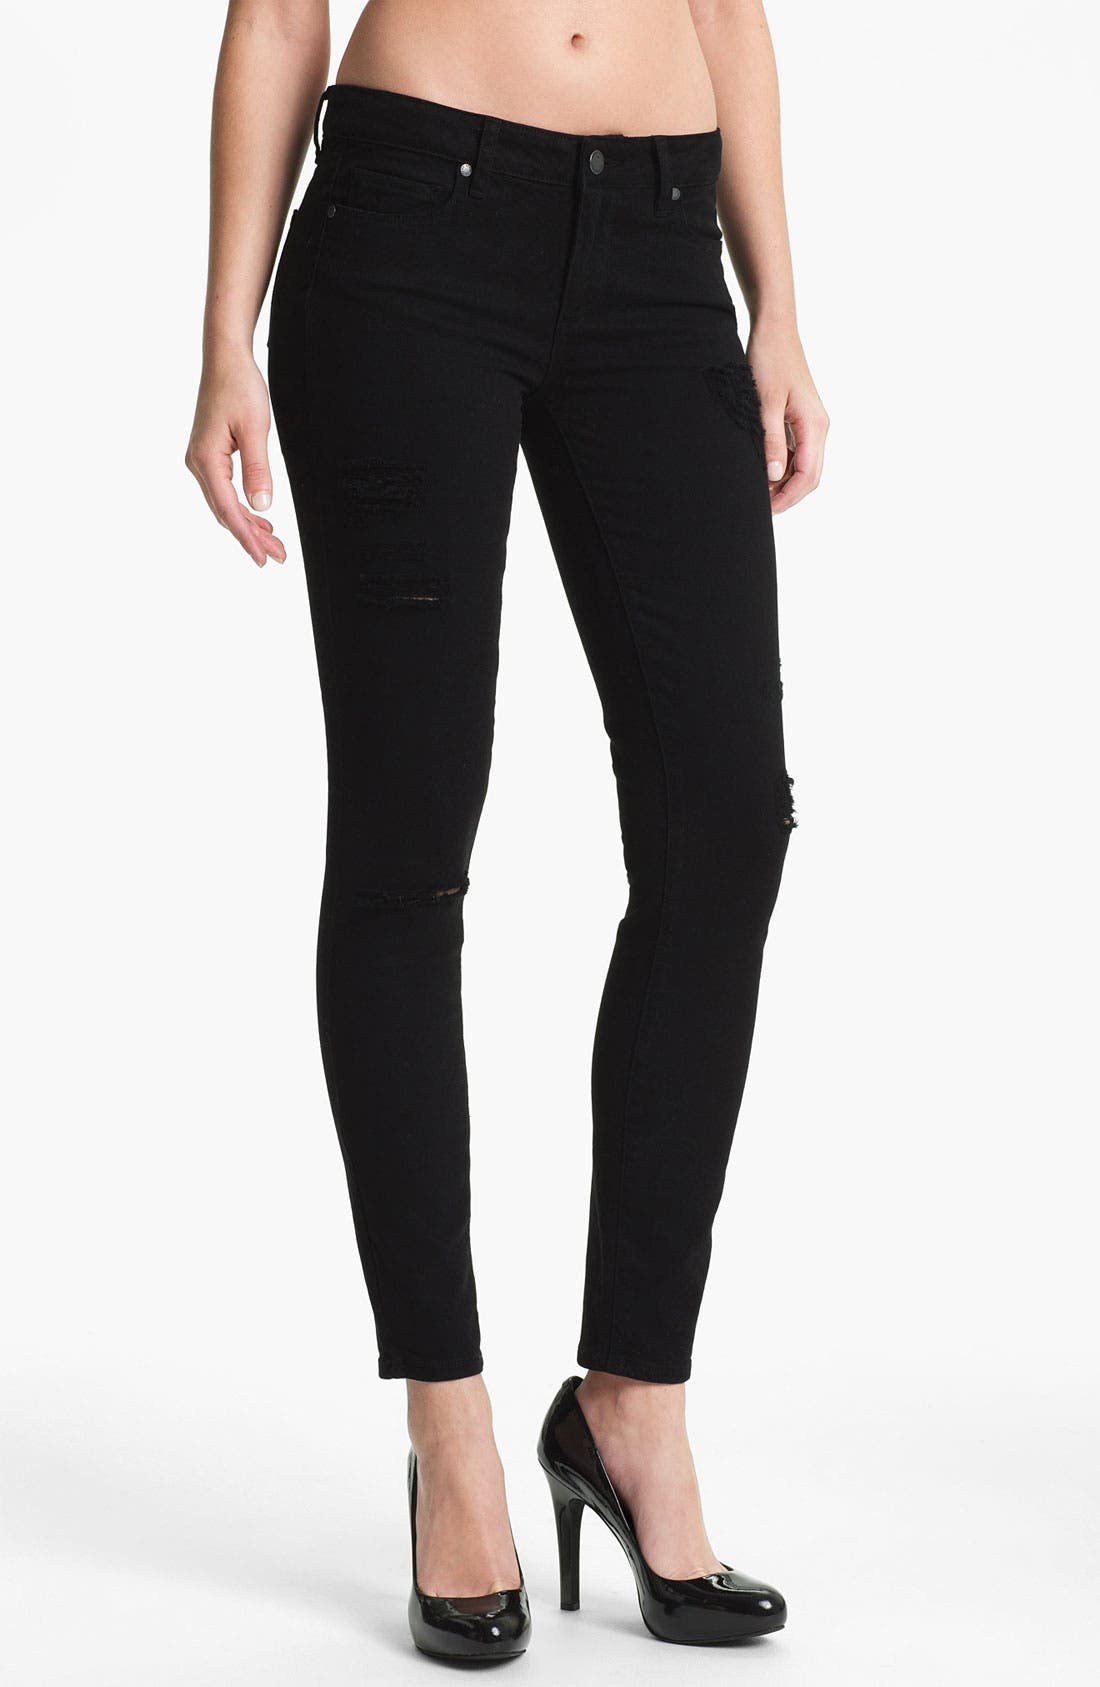 Main Image - Paige Denim 'Verdugo' Stretch Skinny Jeans (Black)